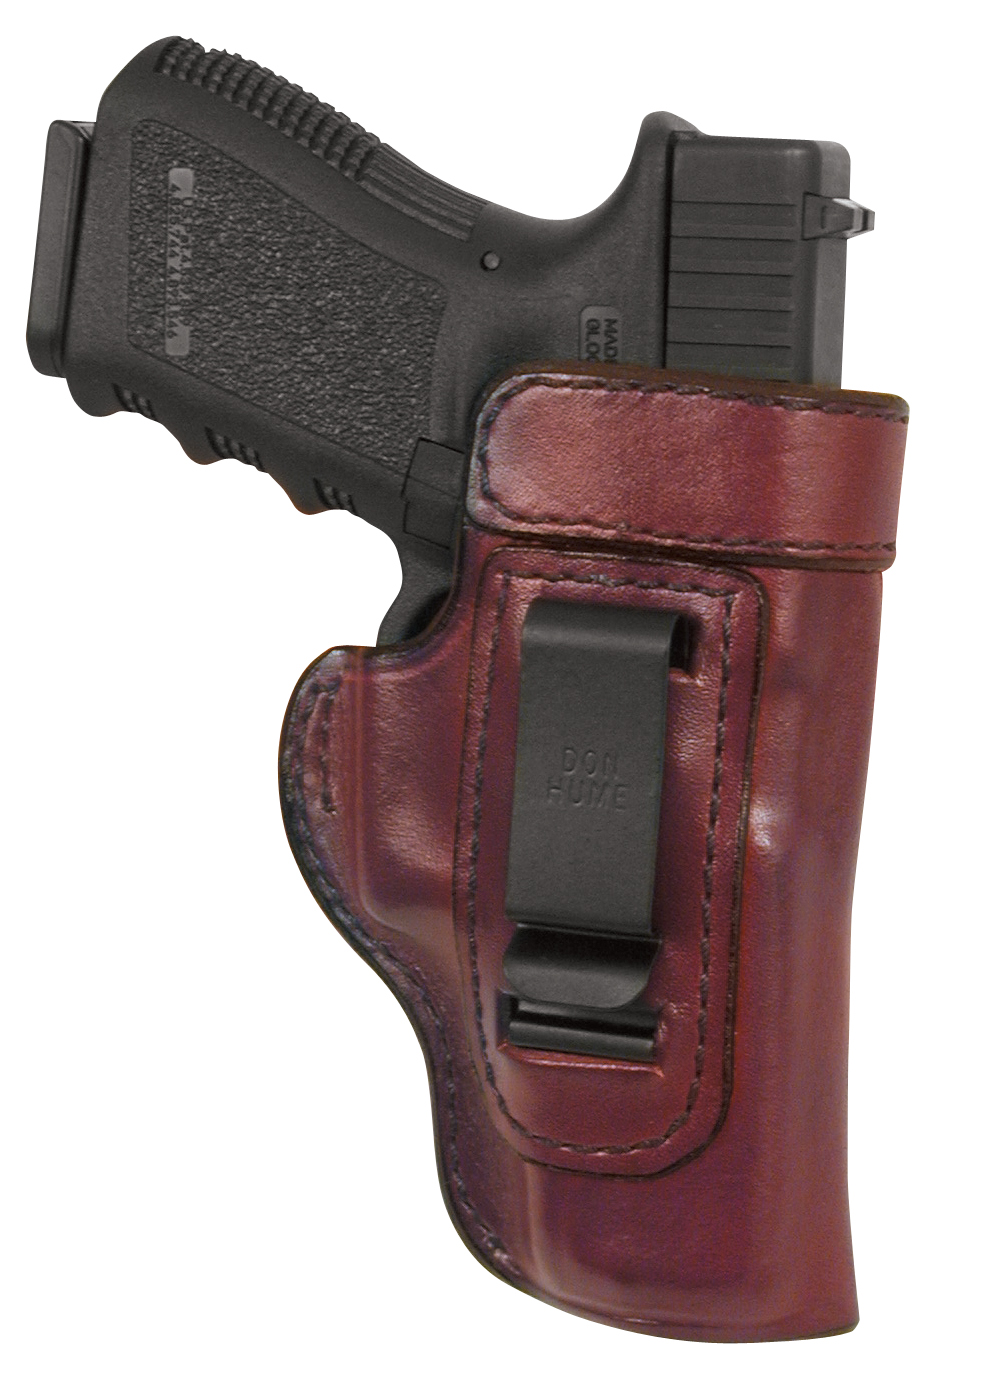 H715-M W C -INSIDE THE PANT HOLSTER [H715-M] - $42 80 : Don